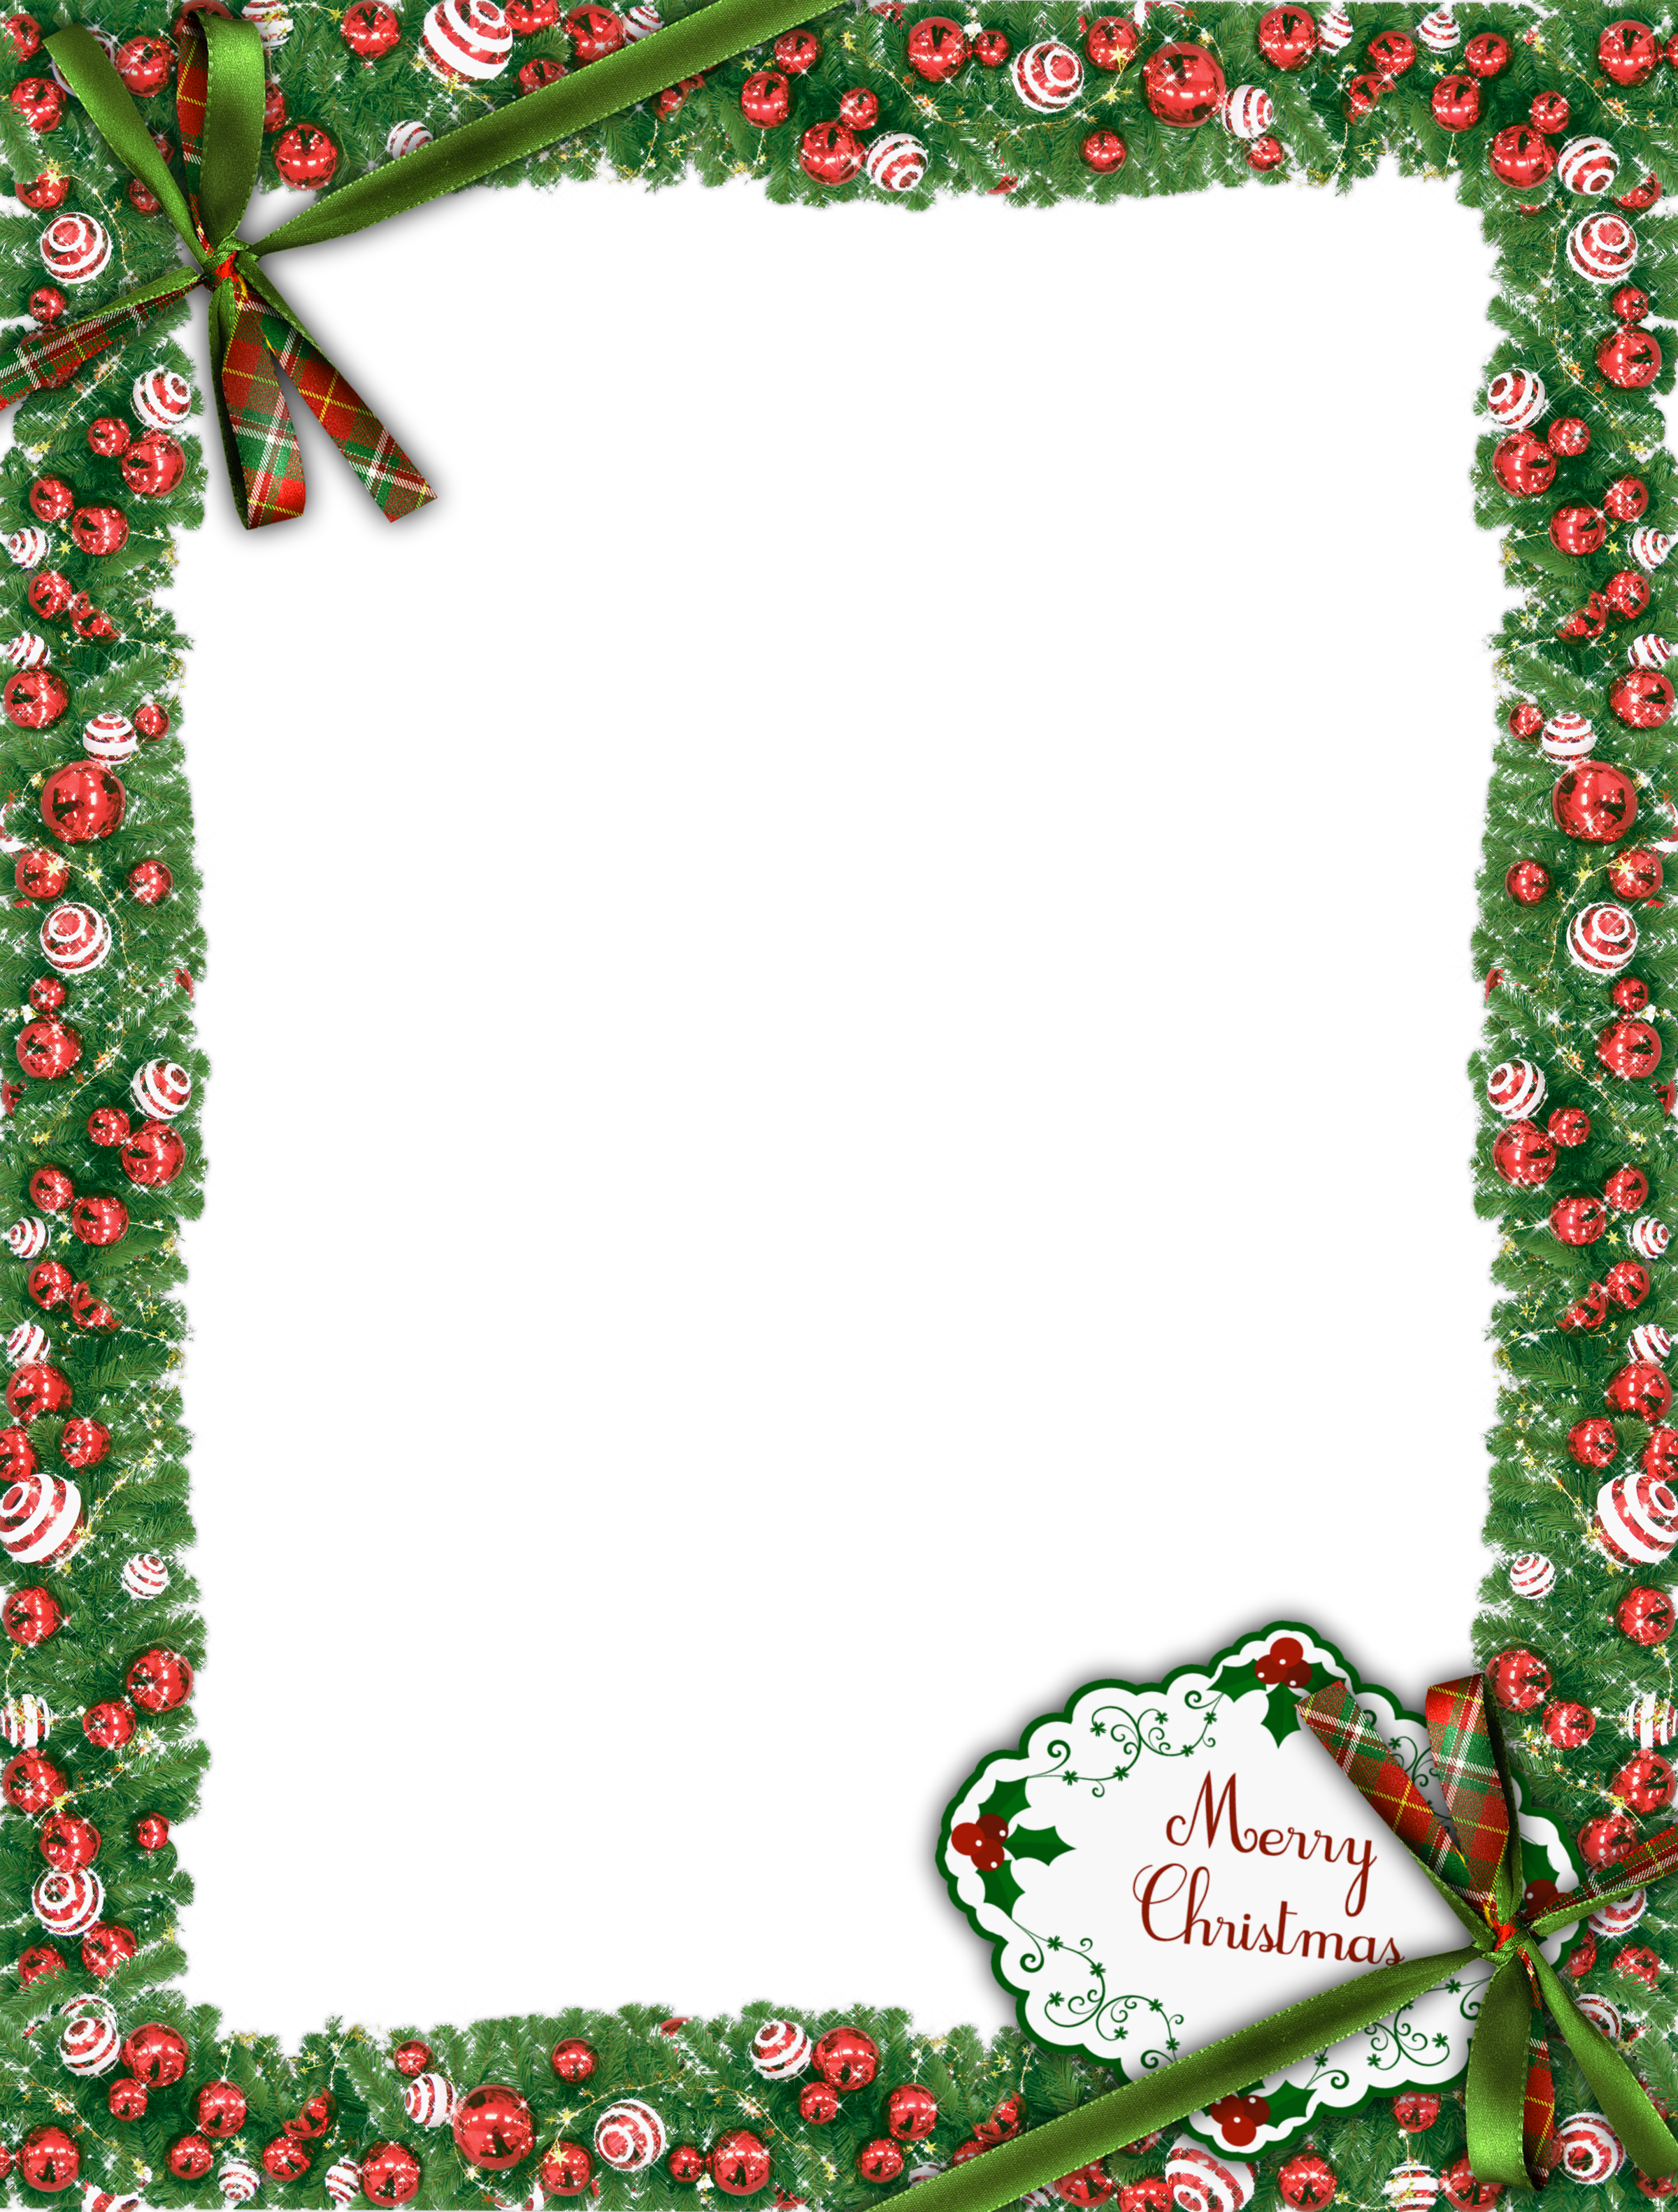 Green photo gallery yopriceville. Merry christmas frame png